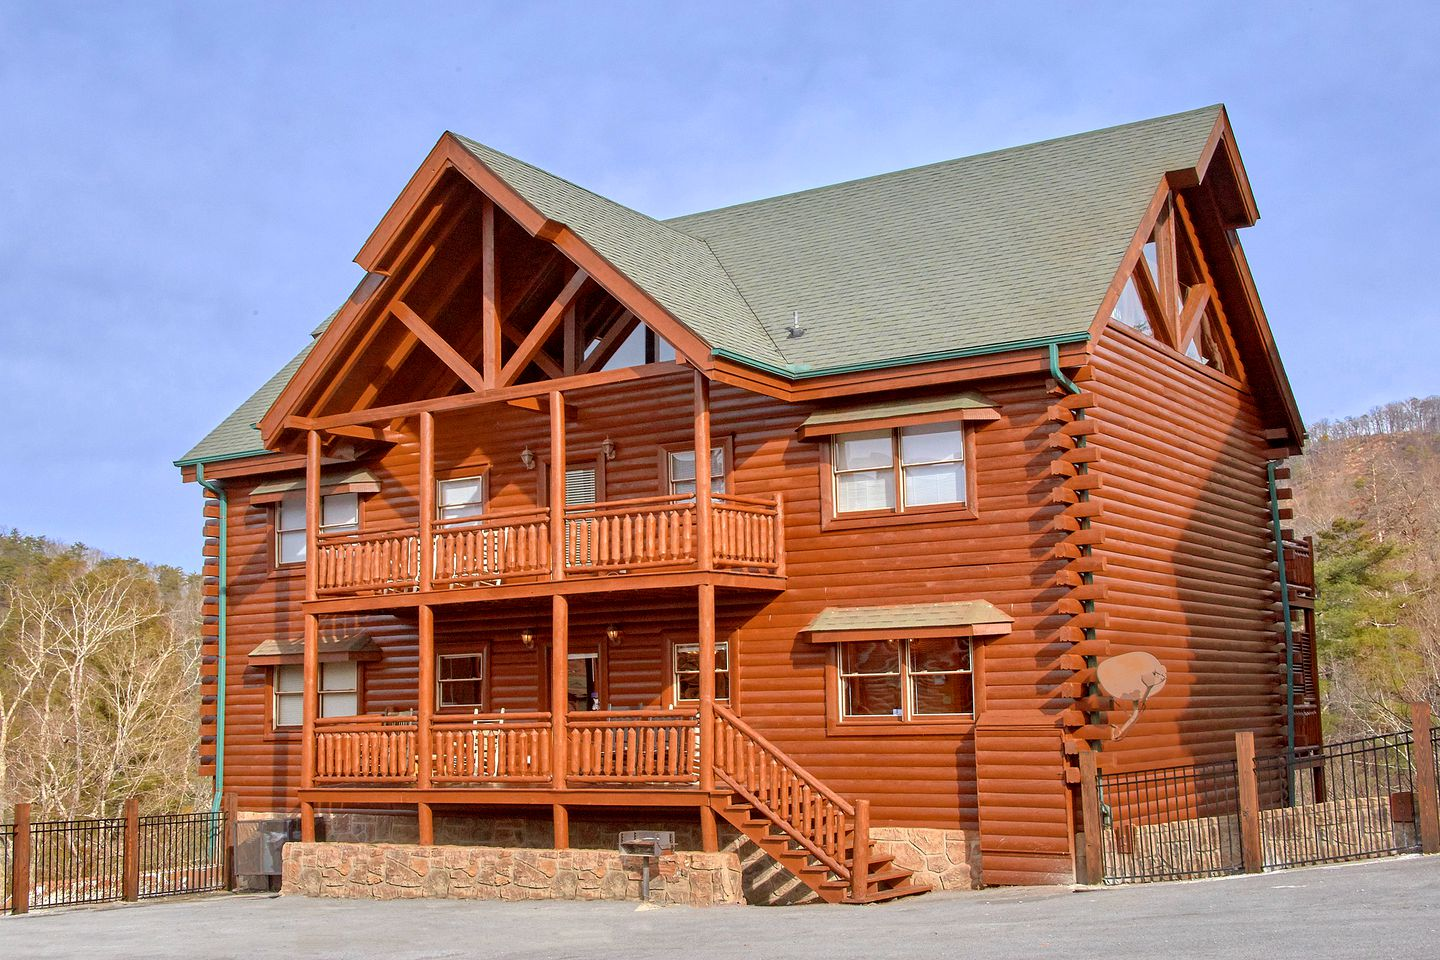 This Pigeon Forge cabin is great for large group getaways in Tennessee